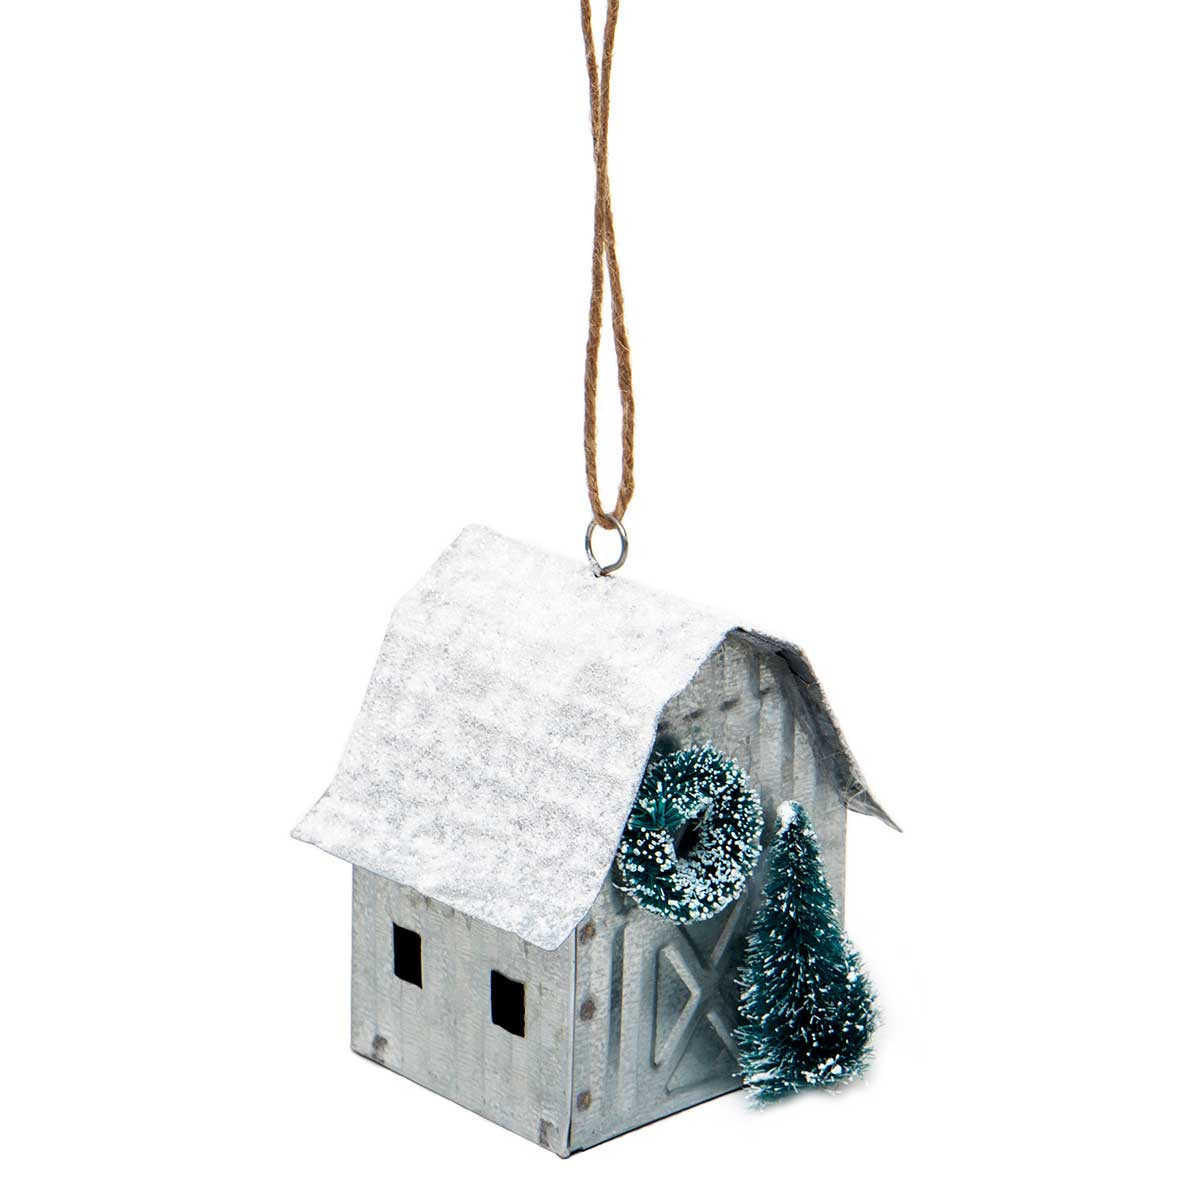 METAL BARN ORNAMENT WITH WHITE GLITTER